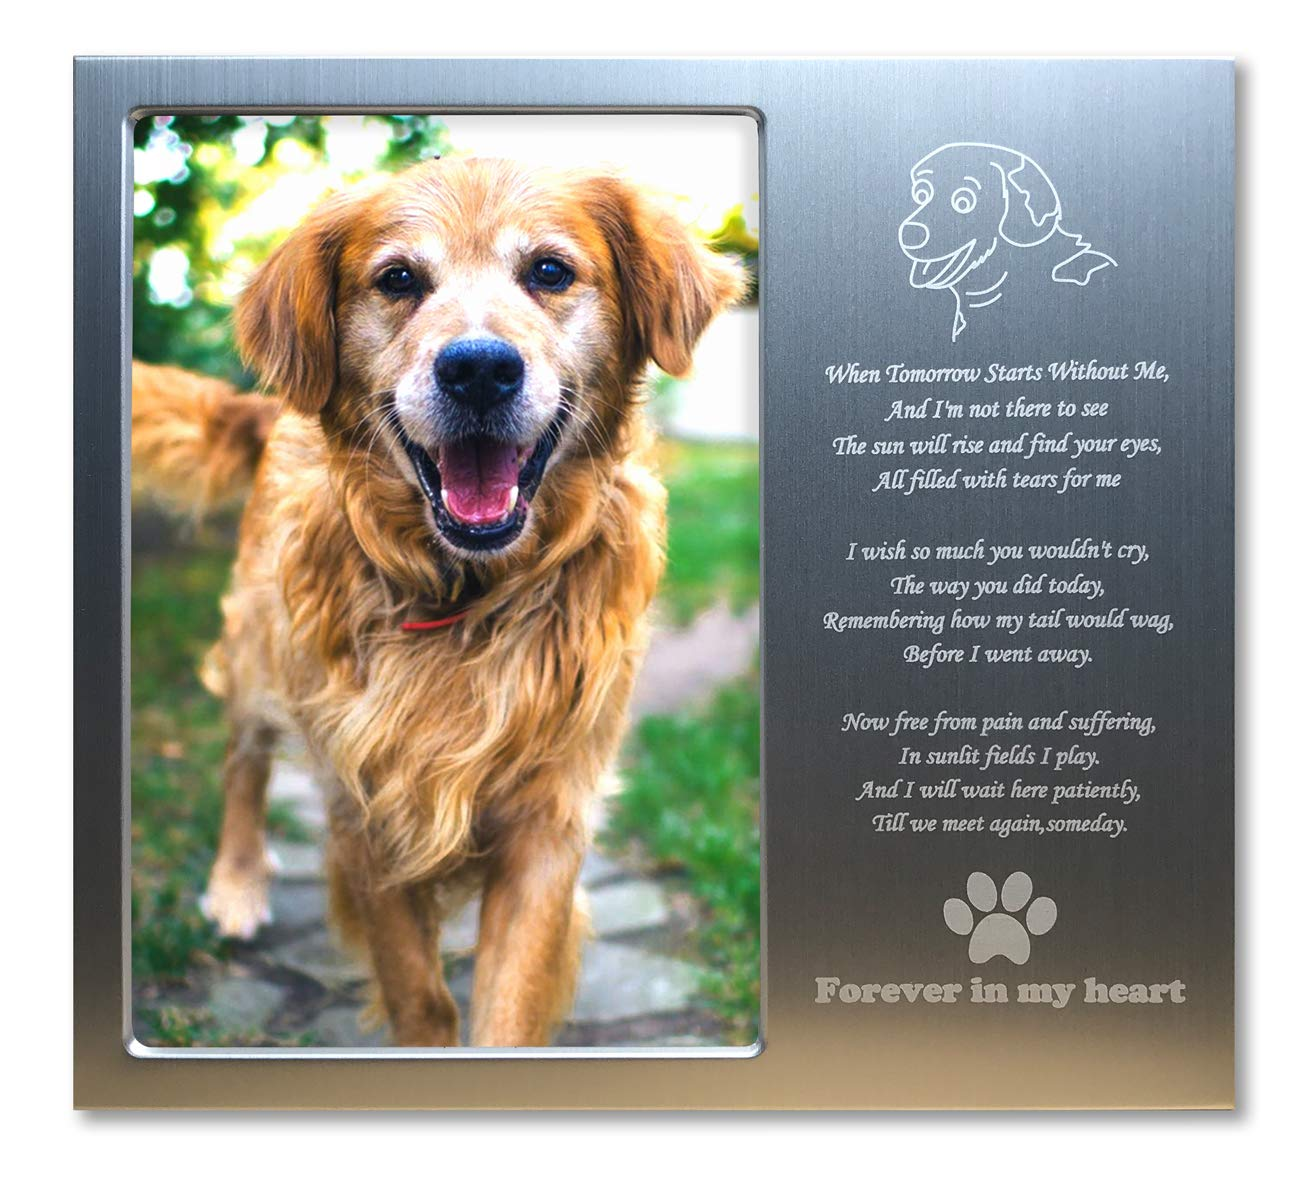 dog supplies online joeziton pet memorial personalized 4x6 picture frame (more choices) or stone for loss of dogs or cats.(01s)